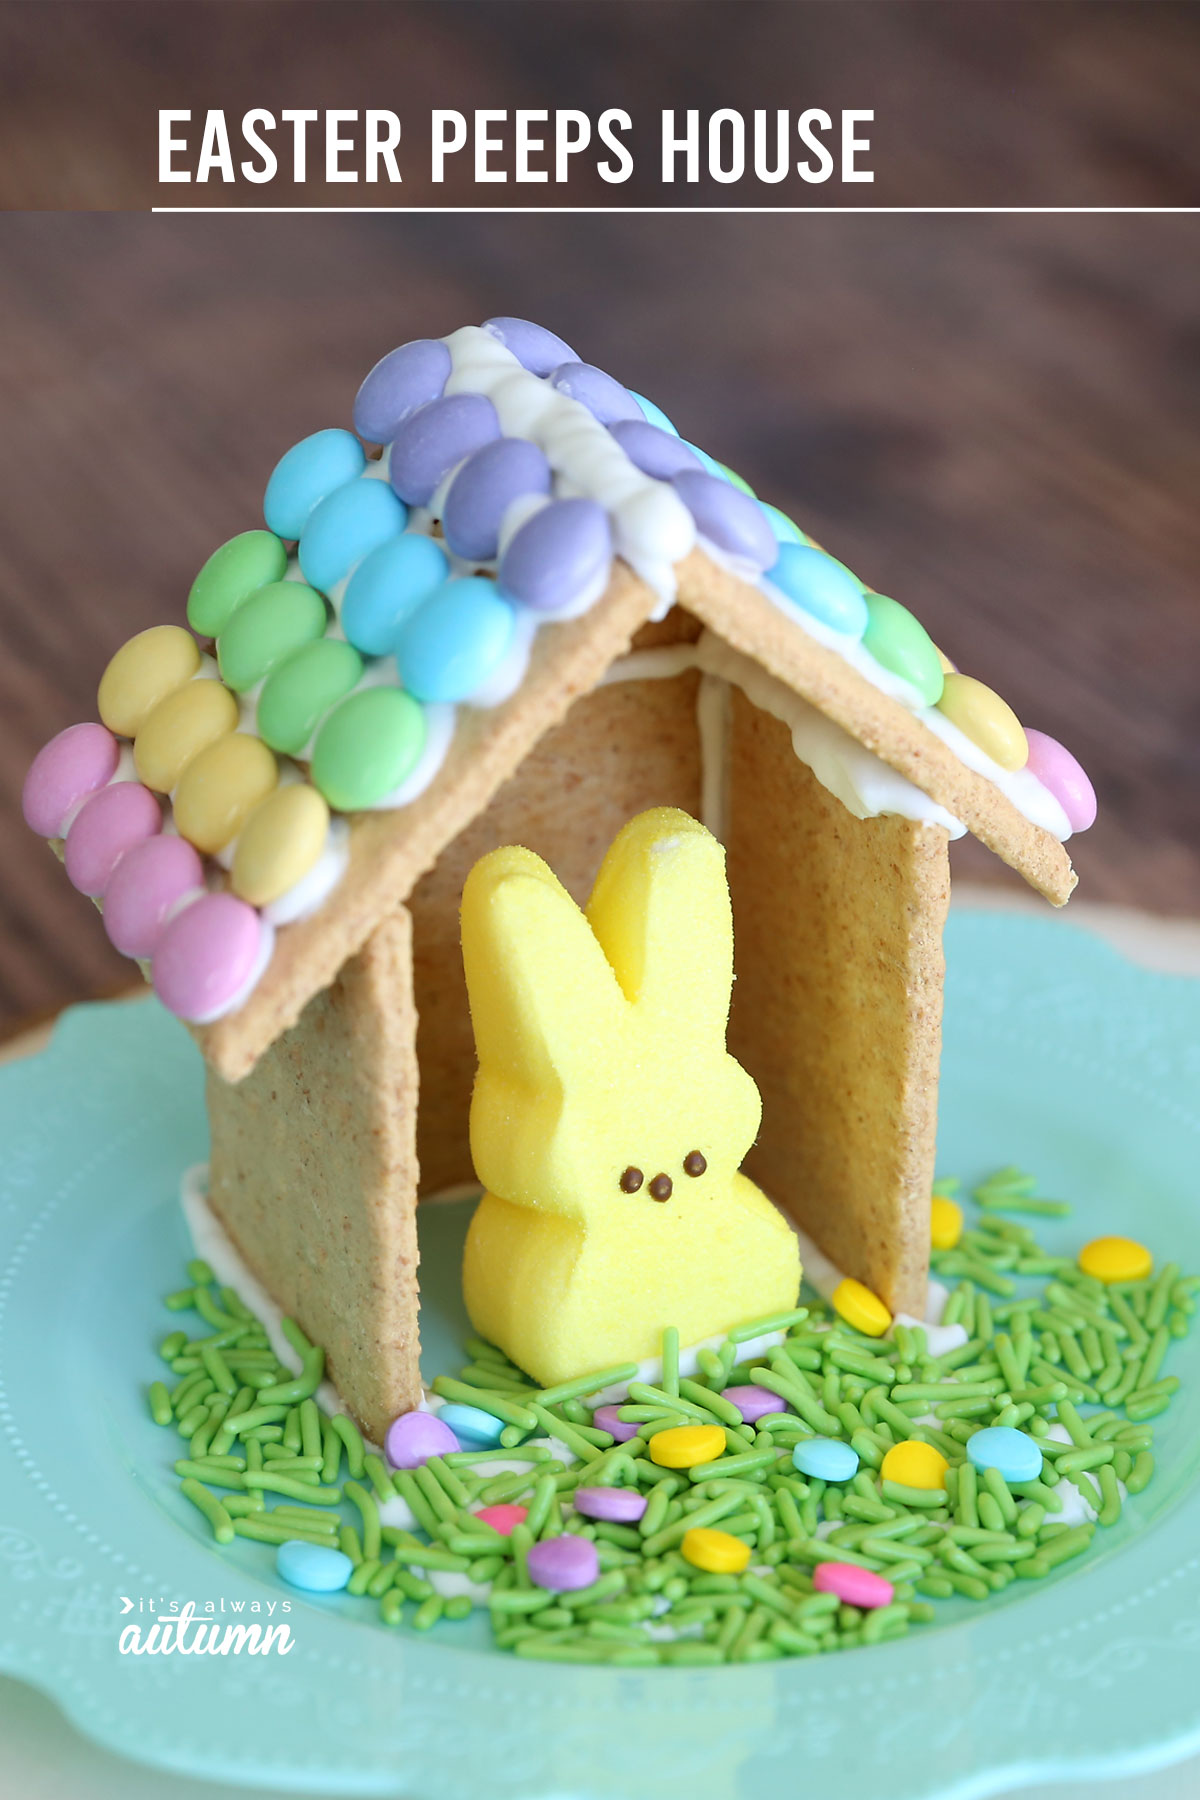 Easter gingerbread house made from graham crackers with Easter M&Ms decorating the roof, with an Easter bunny peep inside